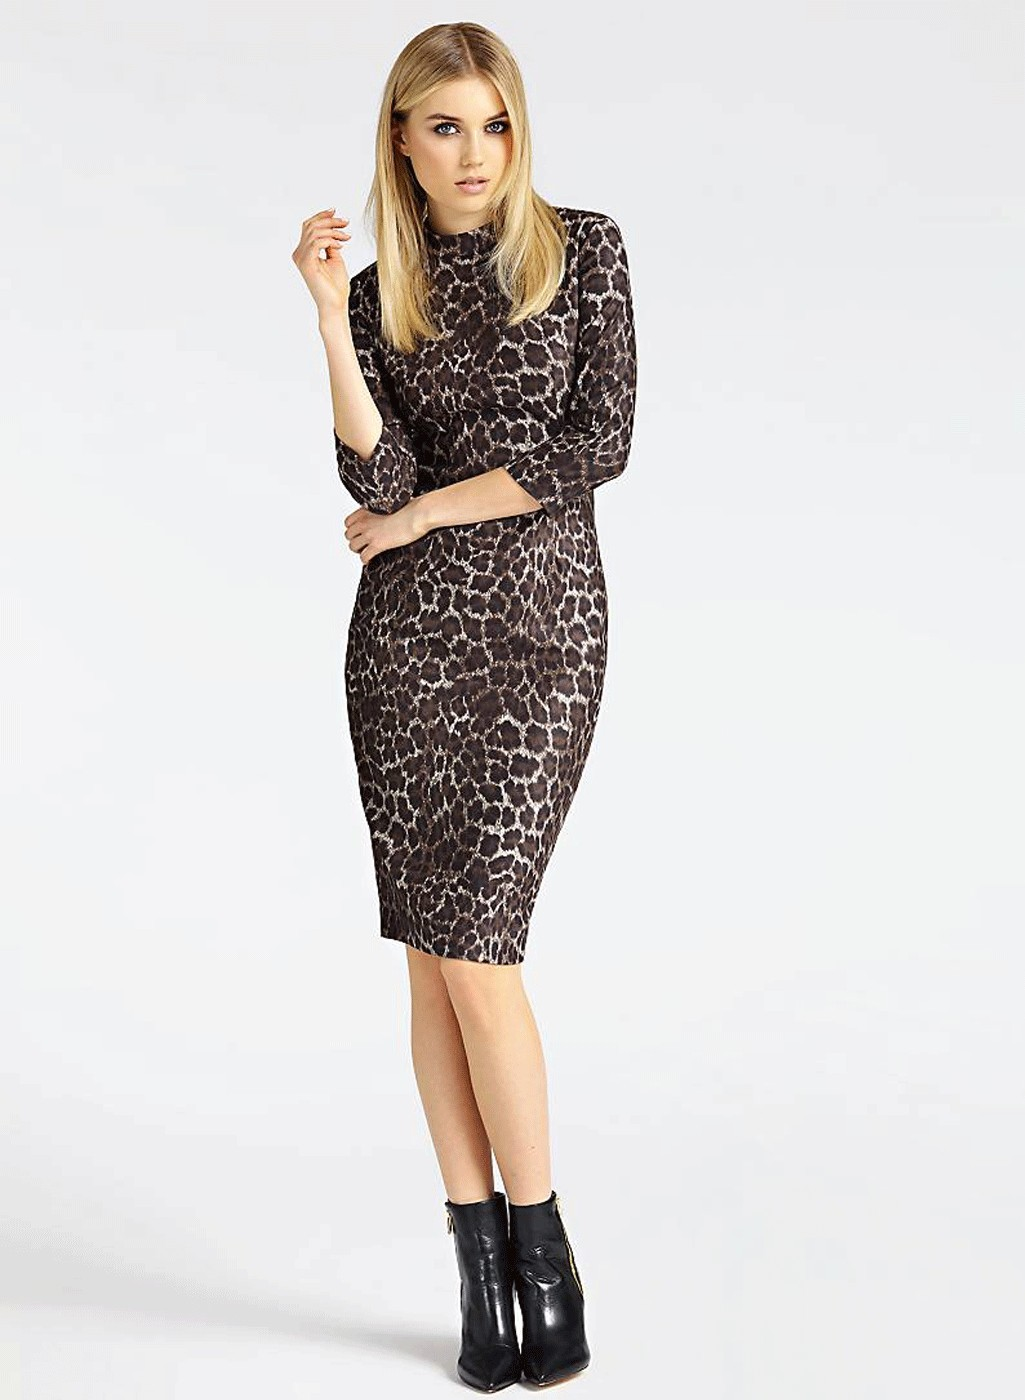 low priced 5b53d ea804 GUESS ABITO DONNA MACULATO ART. W94K73WC690 - Riti Quality